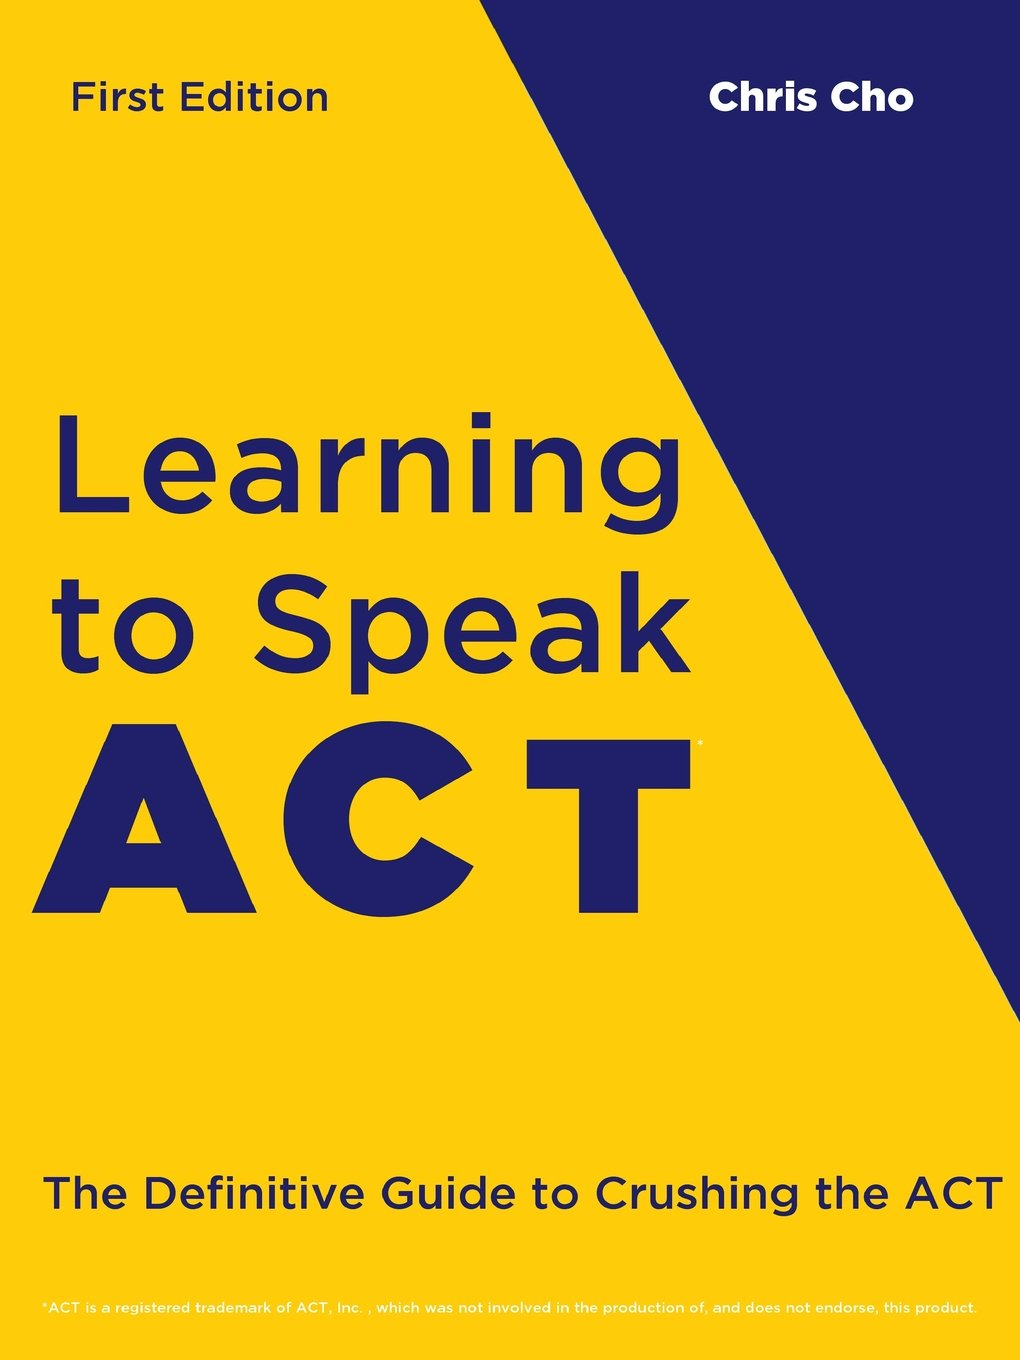 Learning to speak act chris cho 9781387082216 amazon books fandeluxe Gallery